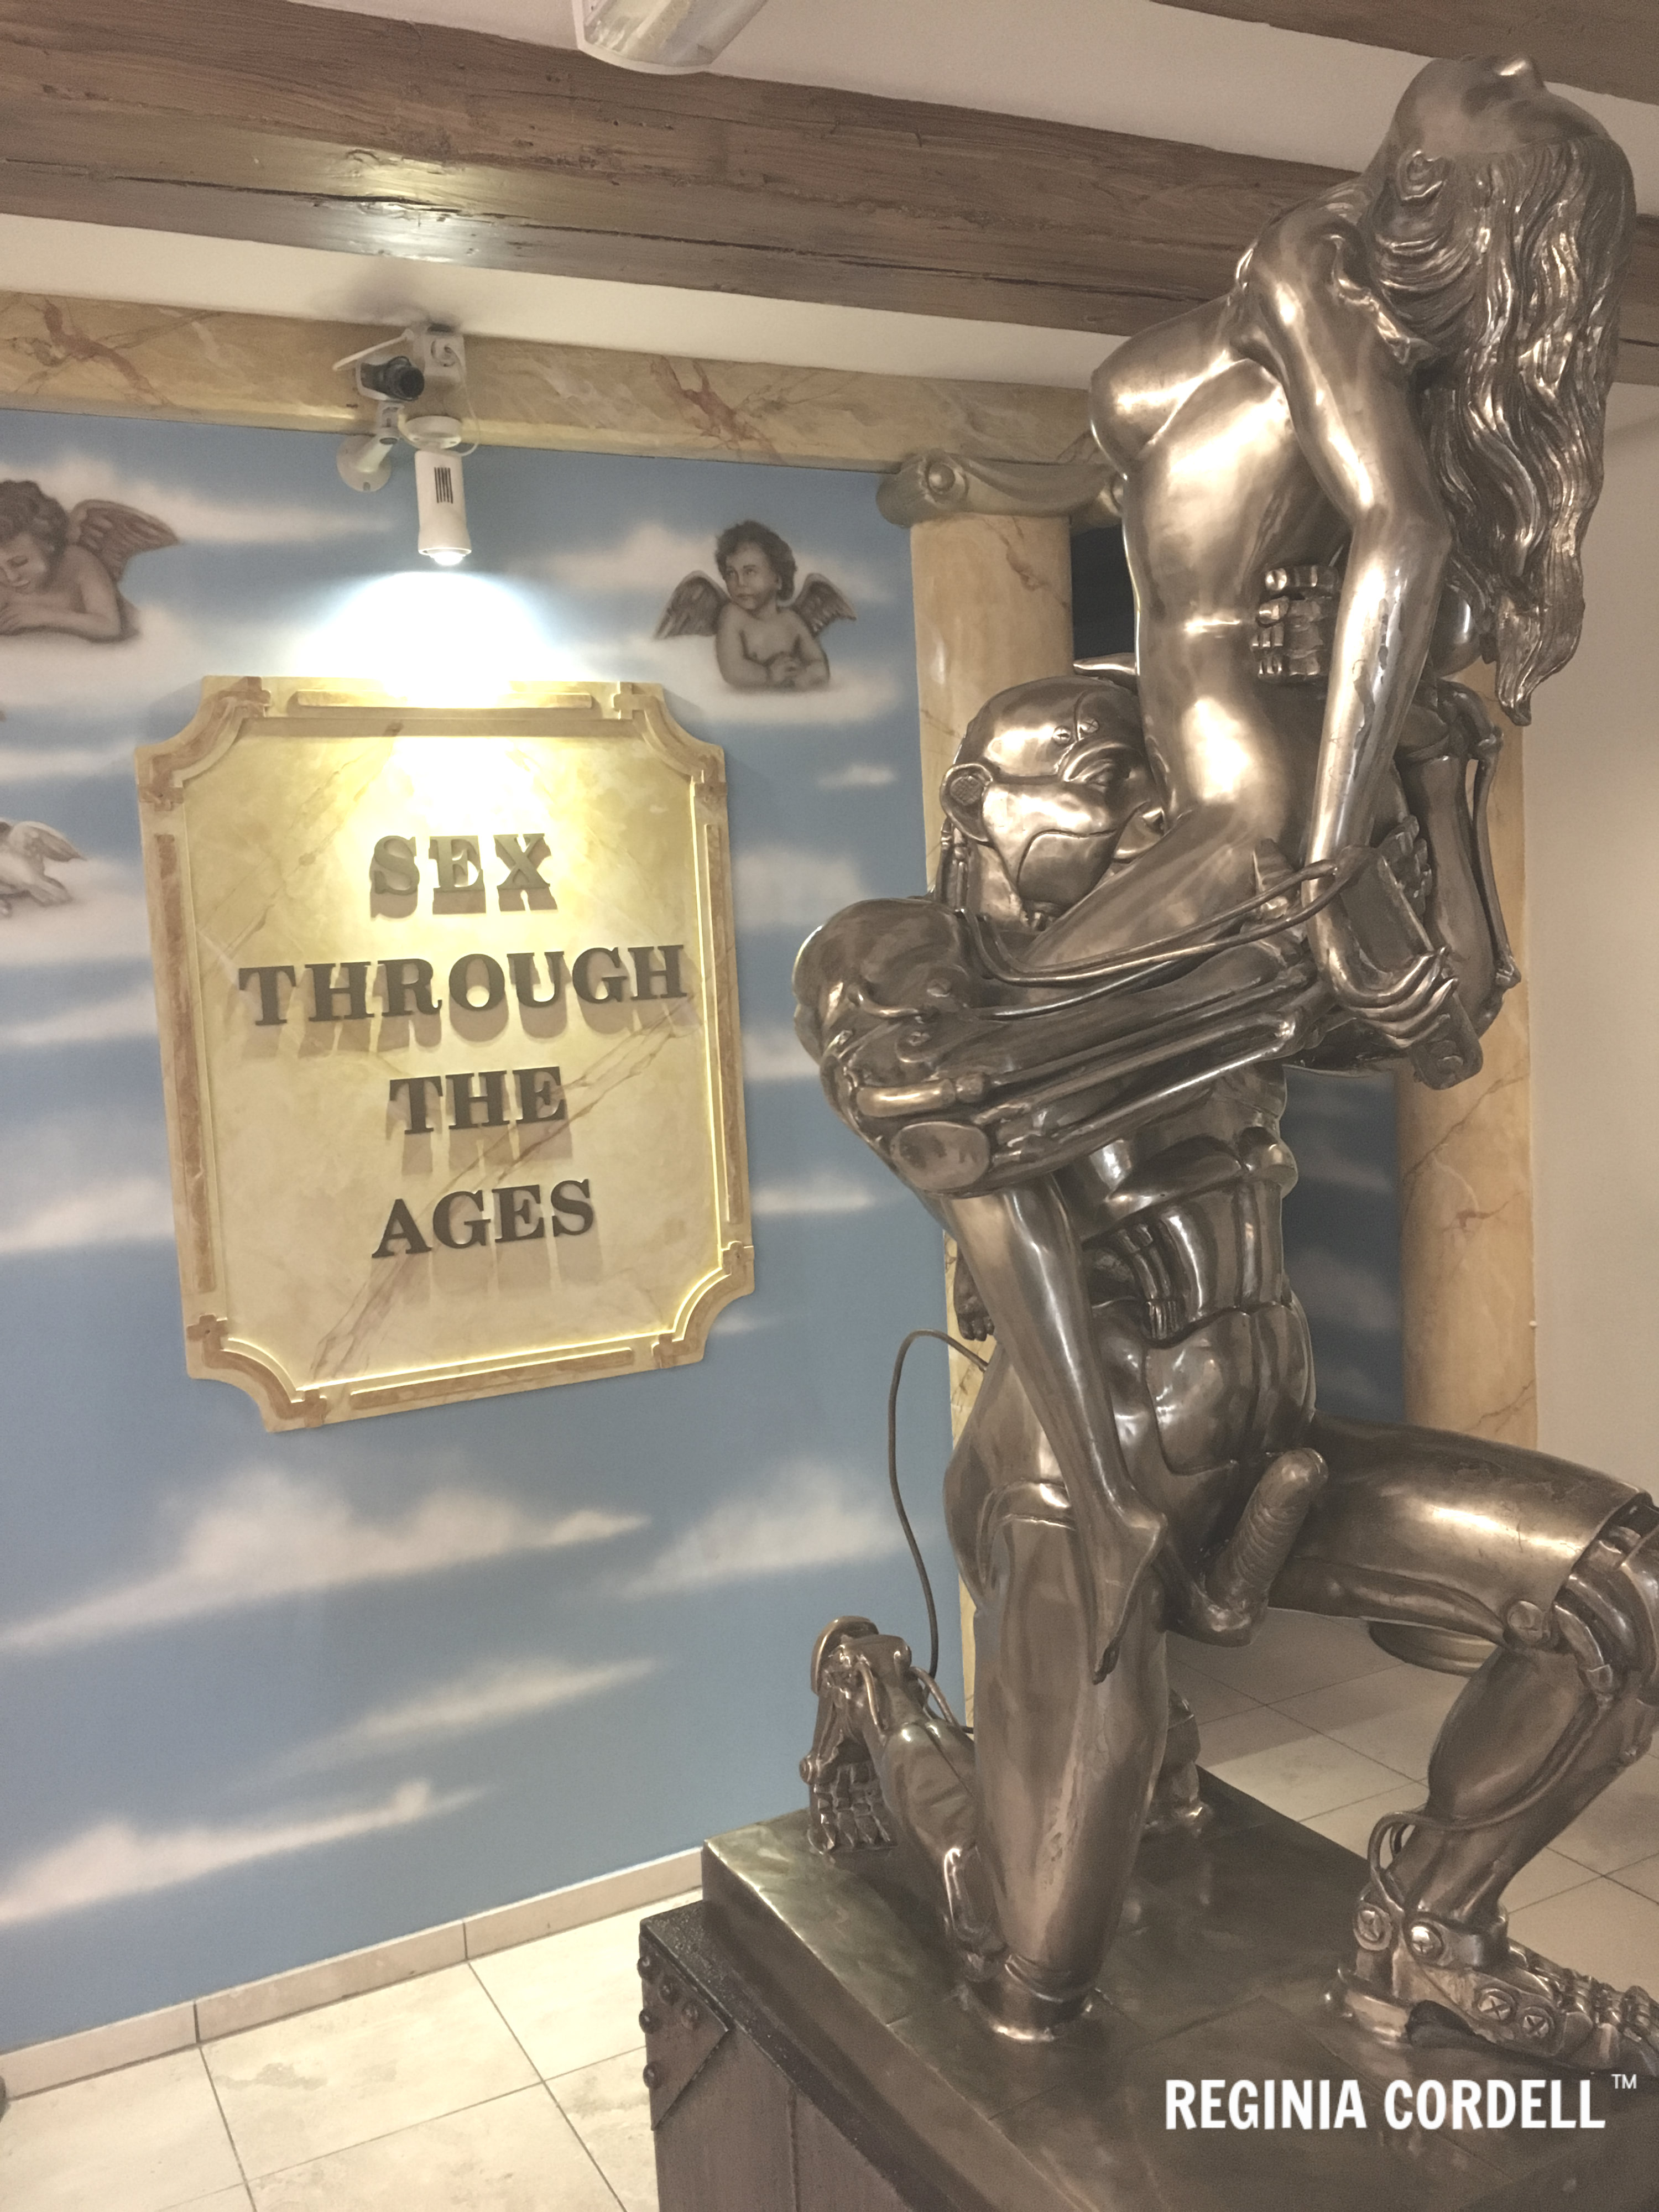 Amusing opinion Pictures of sex museum from